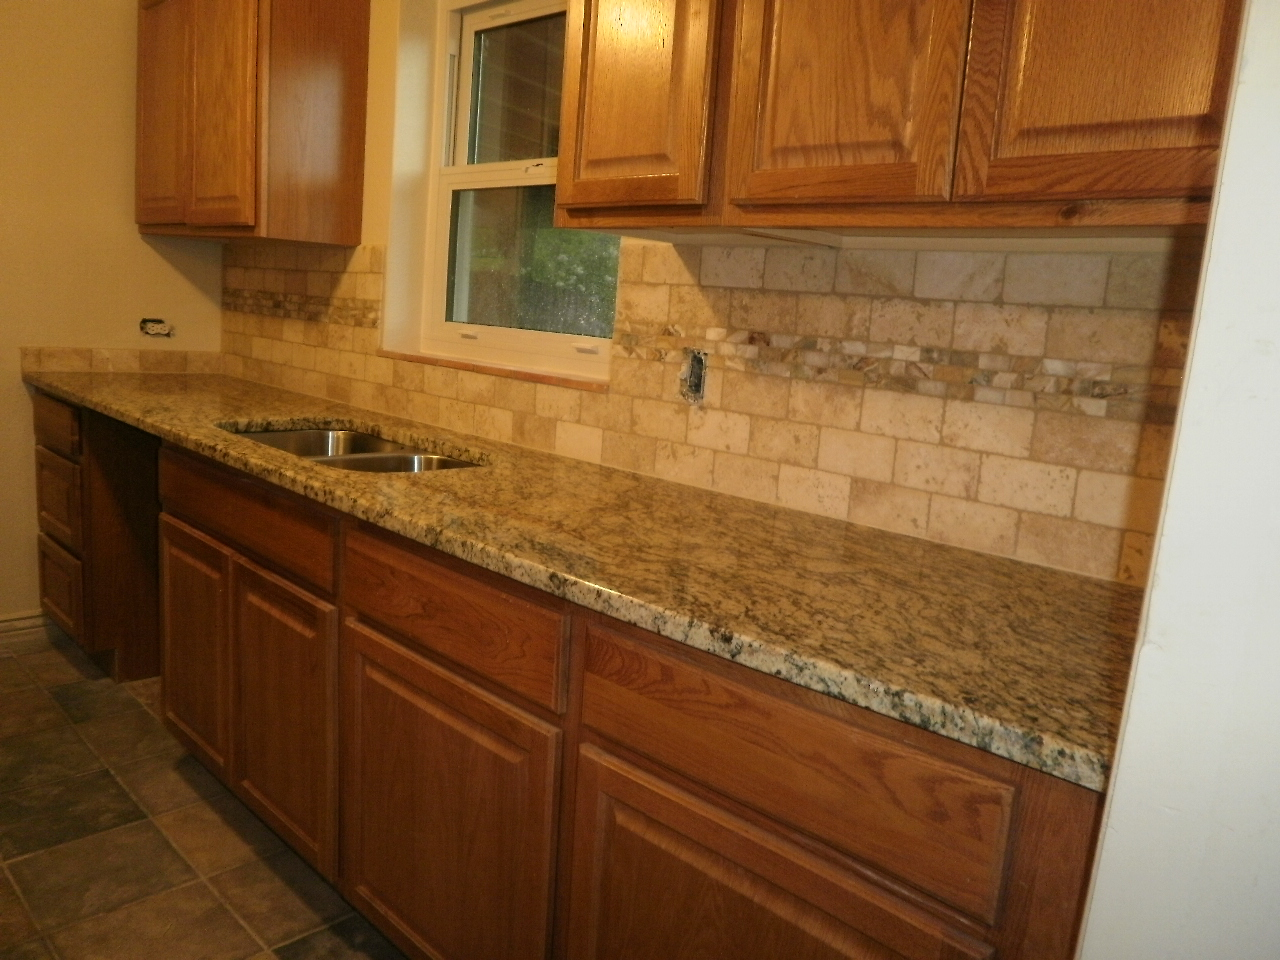 Santa cecilia granite backsplash ideas Kitchen tiles ideas